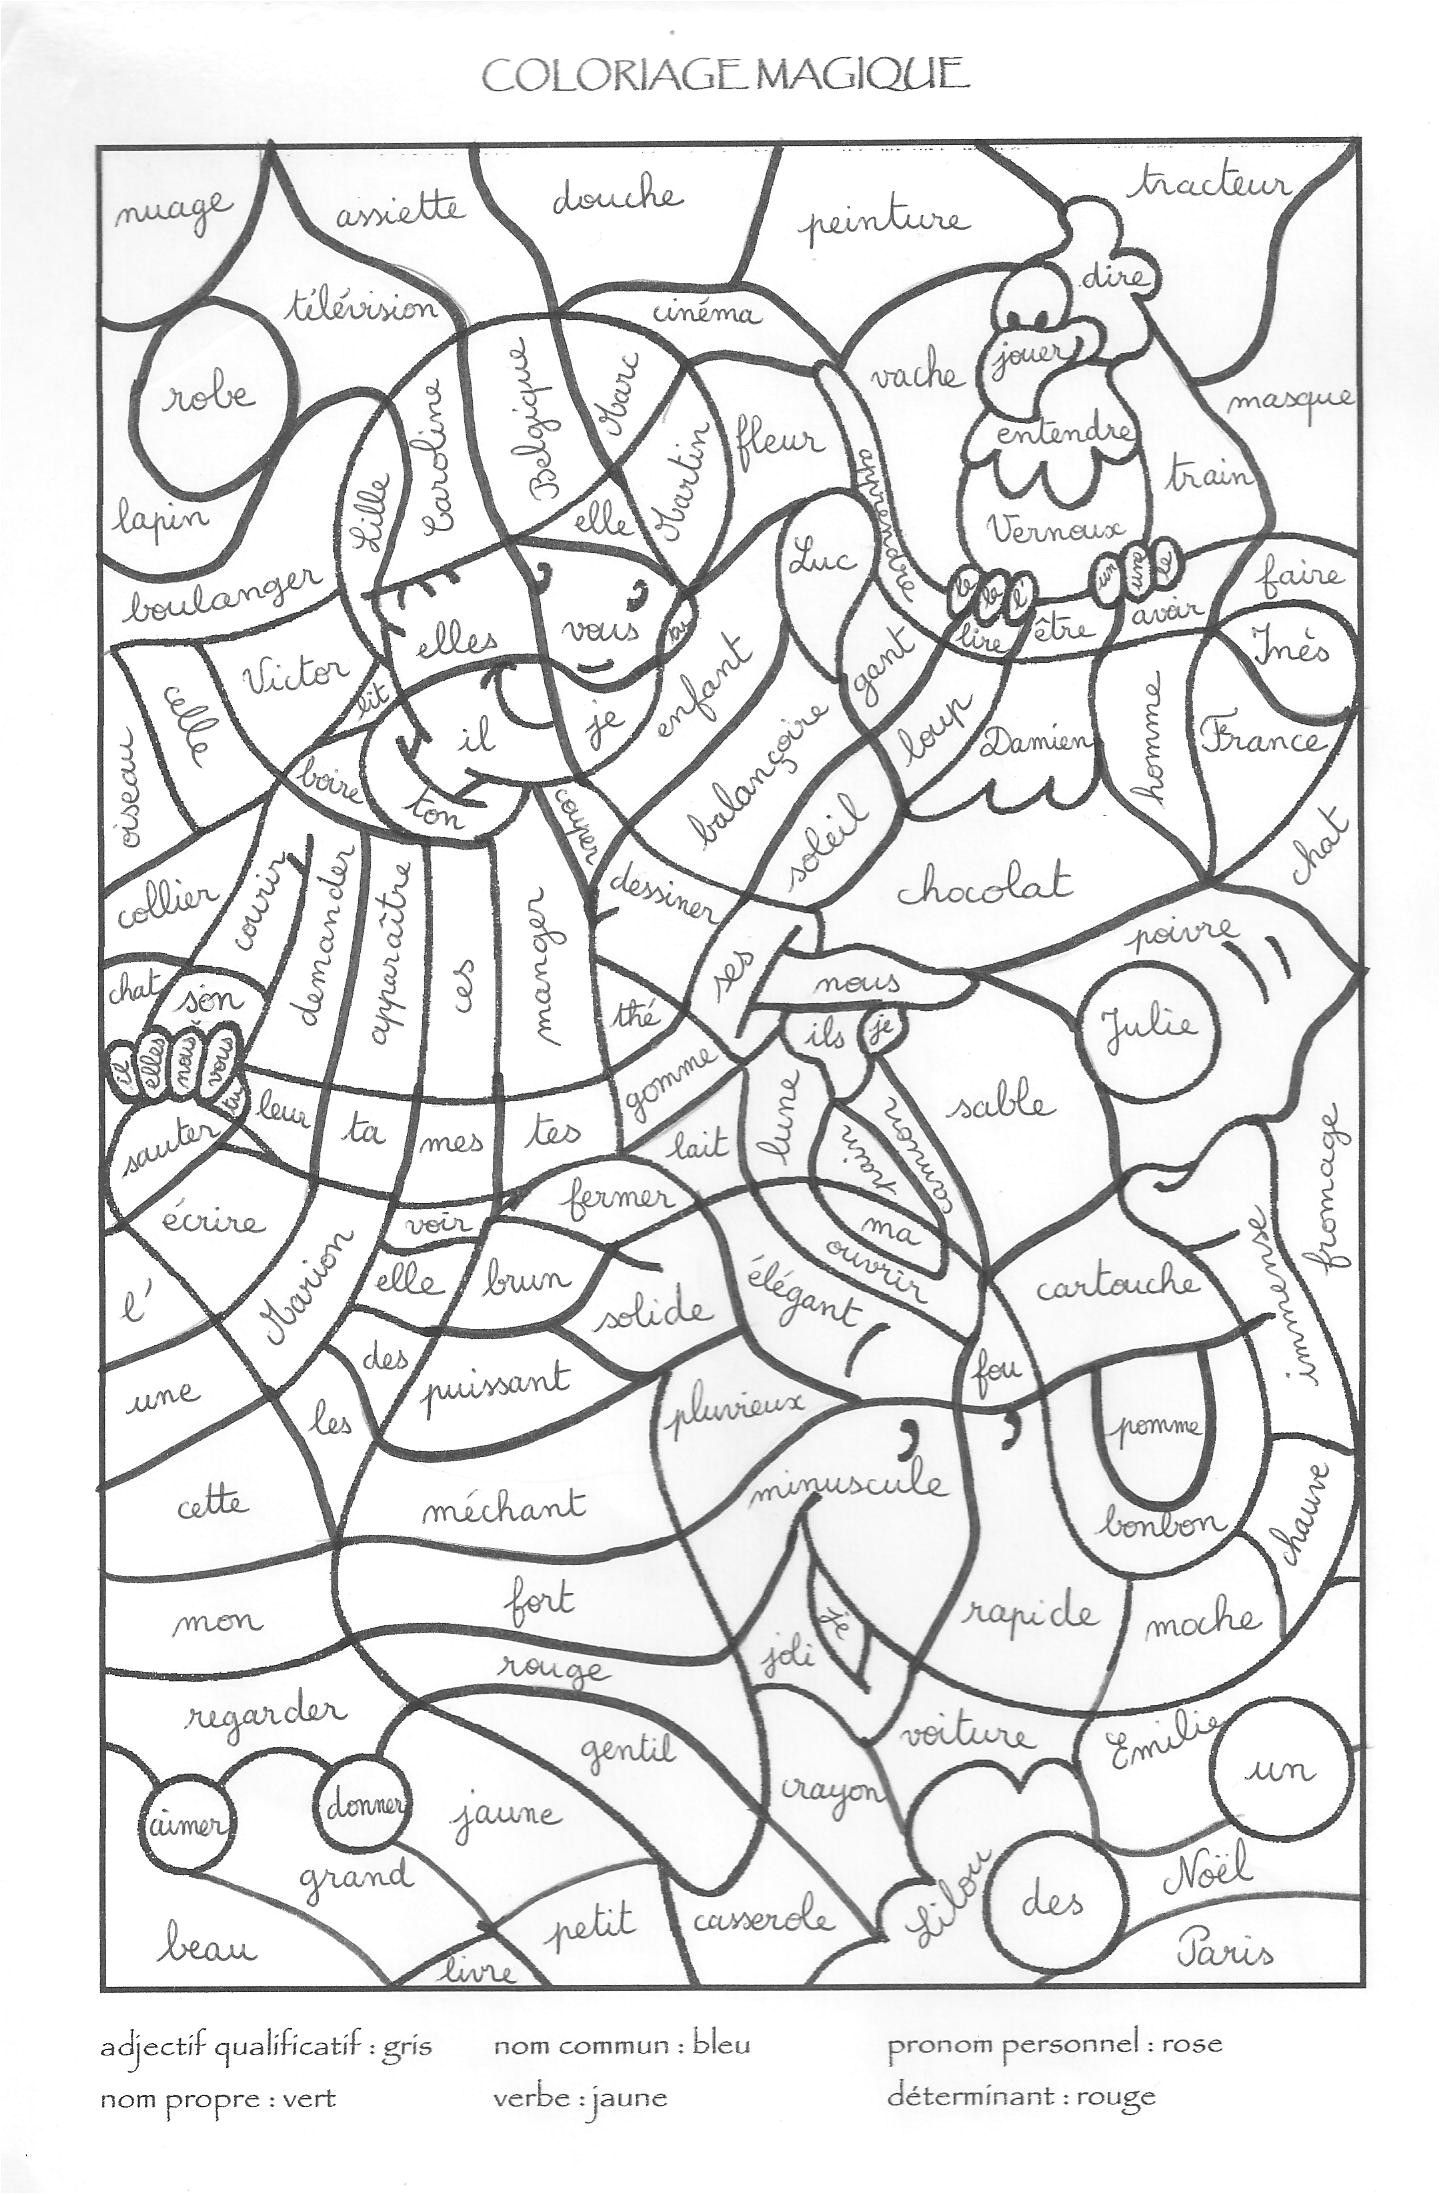 Coloriage Magique Anglais Cycle 3 Supercoloriage Math 4 Kids